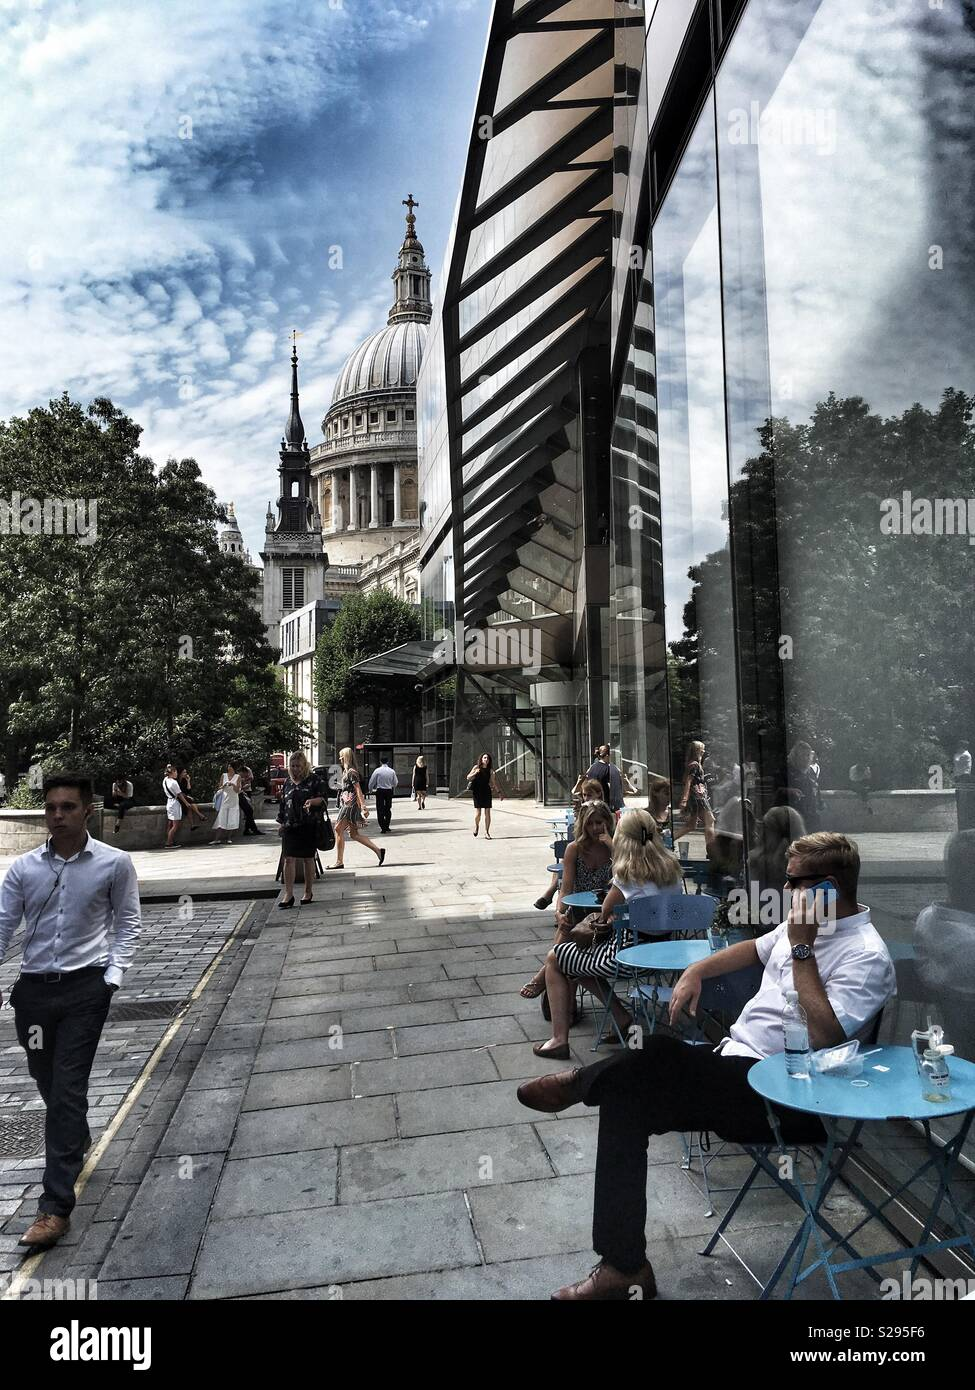 People sat outside One New Change in London, England - Stock Image